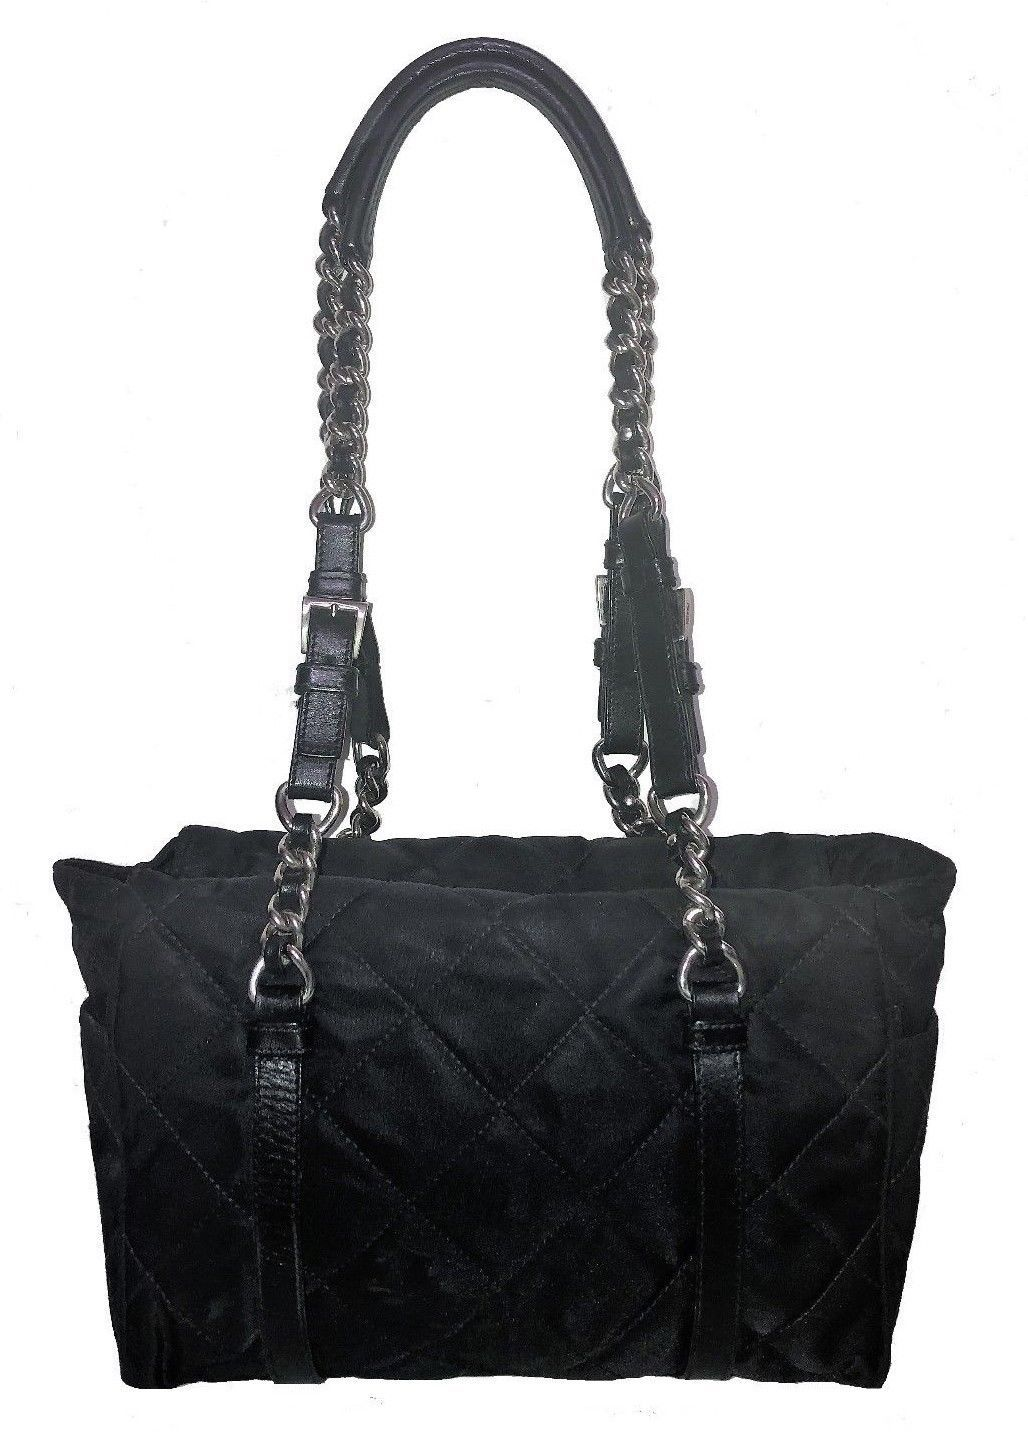 1ee663fc4c83 Authentic PRADA Black Quilted Nylon Shoulder Bag Chain Leather Straps Zip  Tote